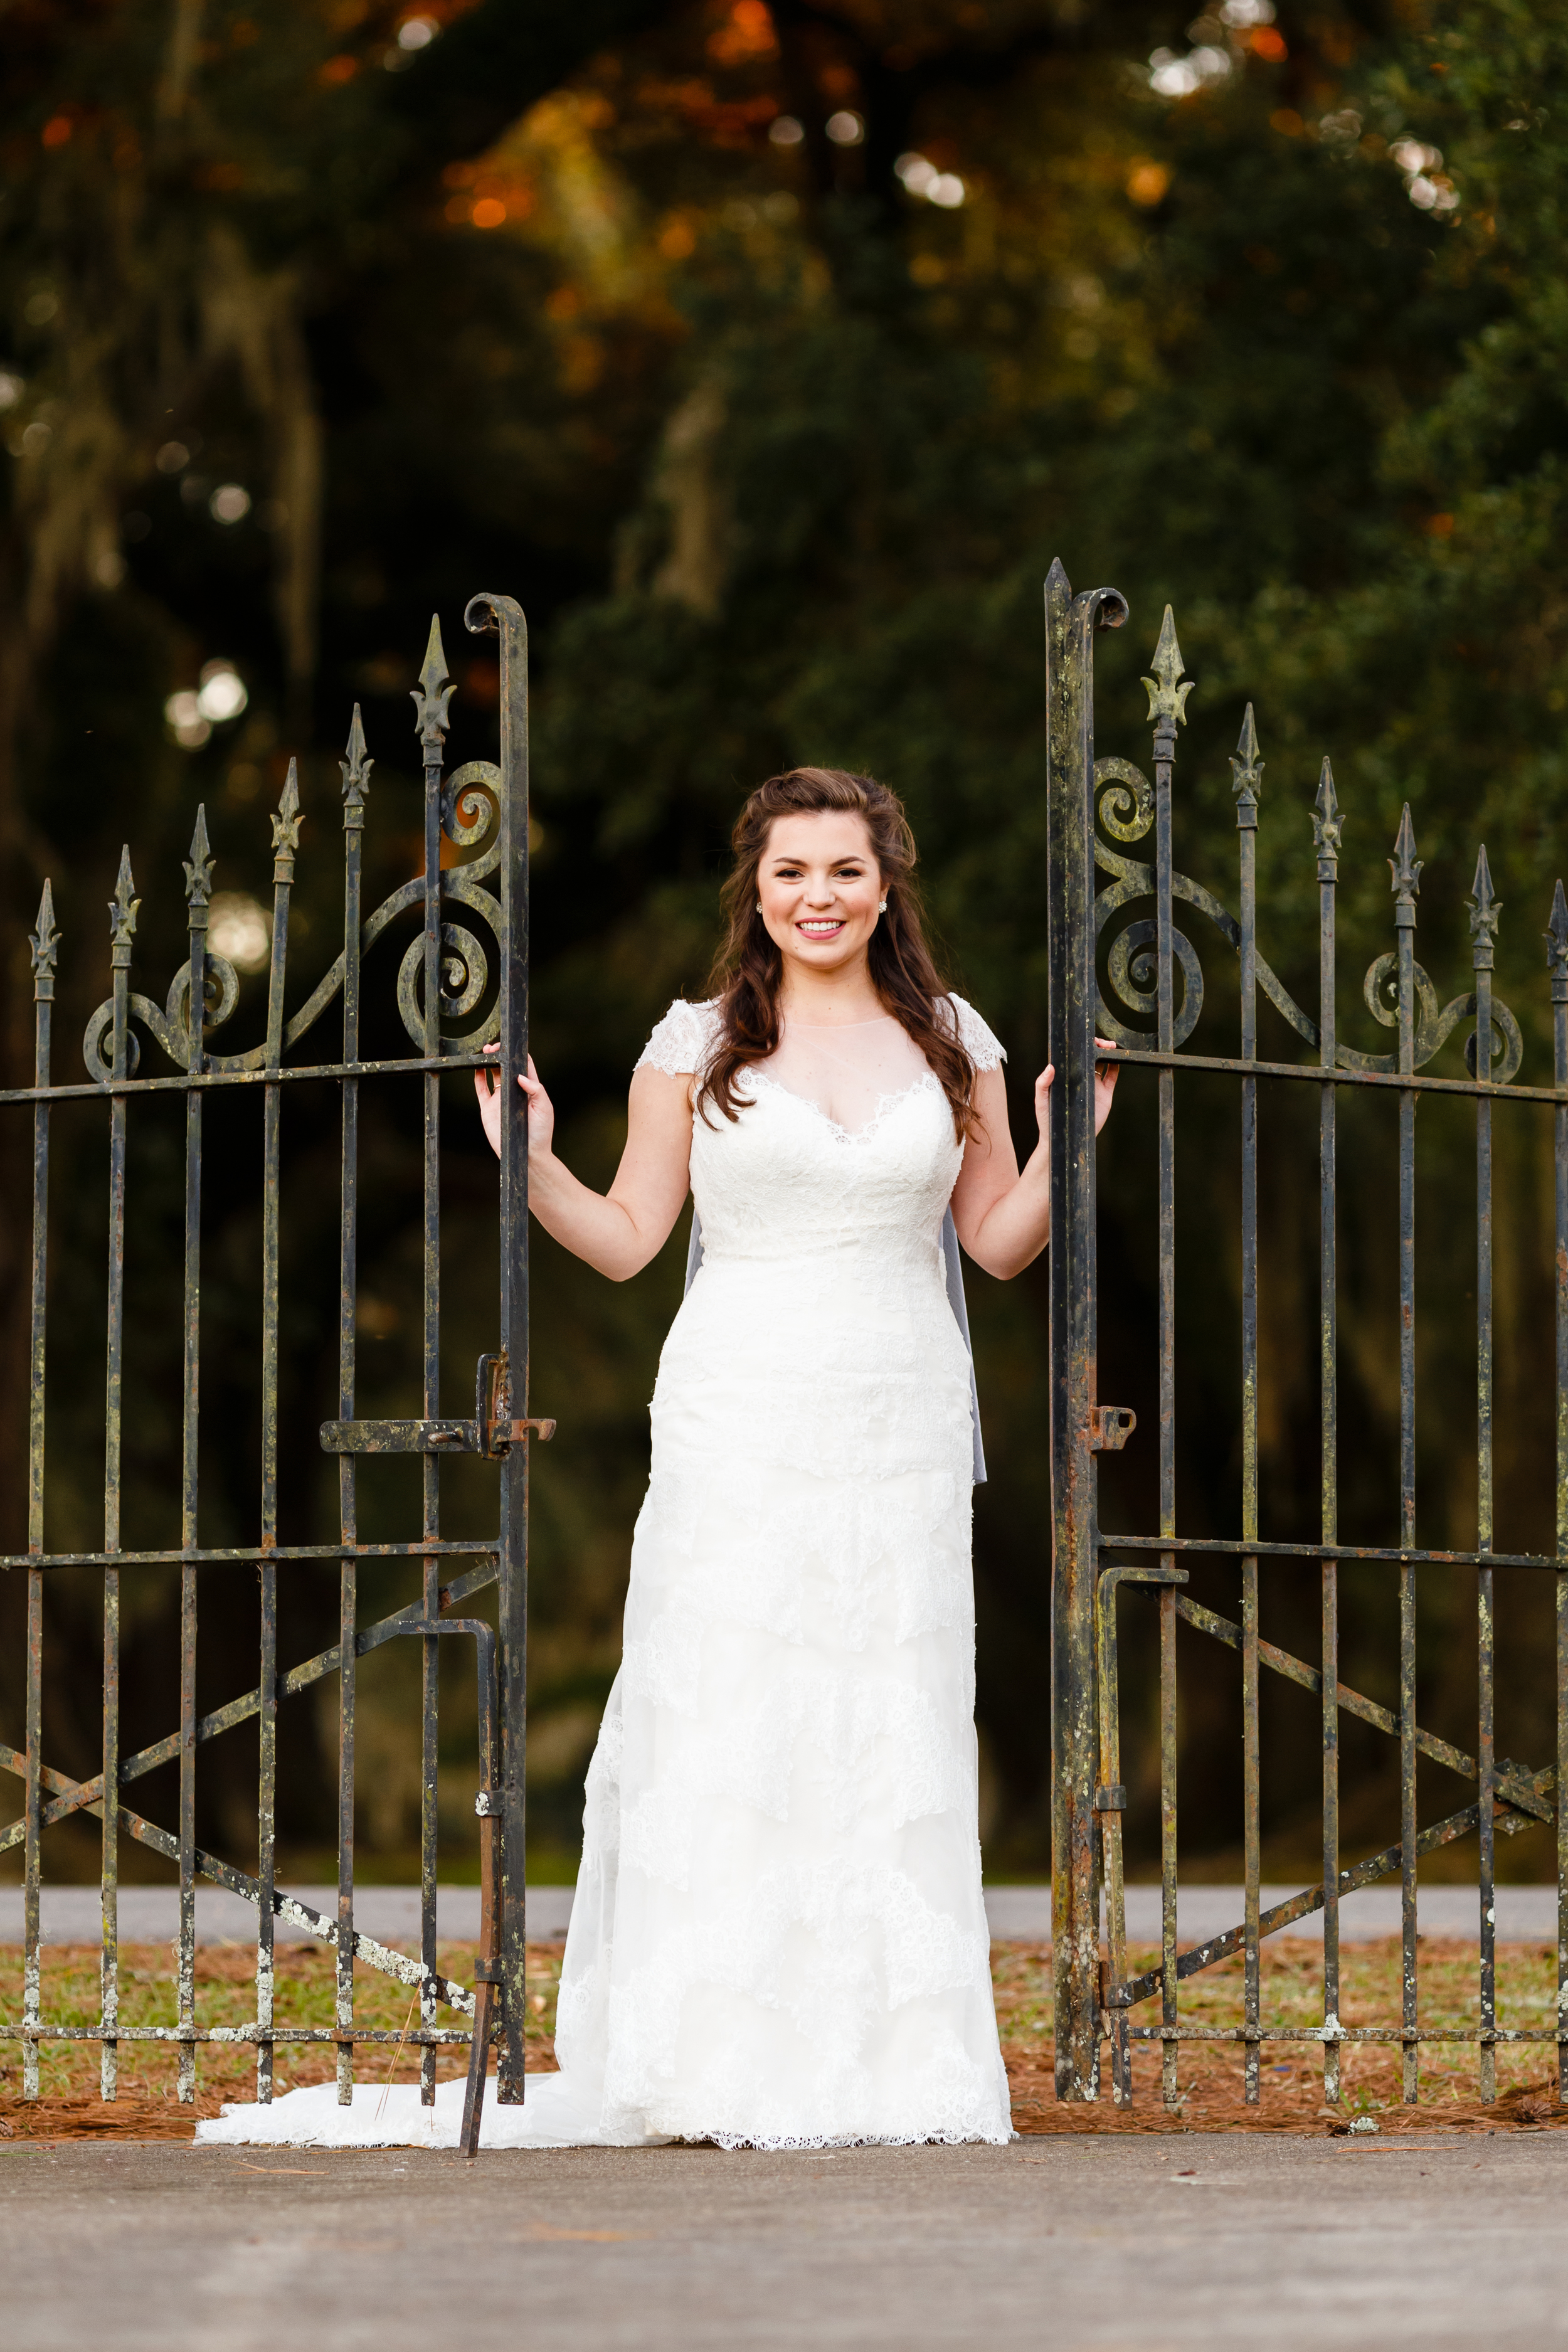 Bridal-wedding-portrait-lafayette-broussard-youngsville-photographer-9.jpg